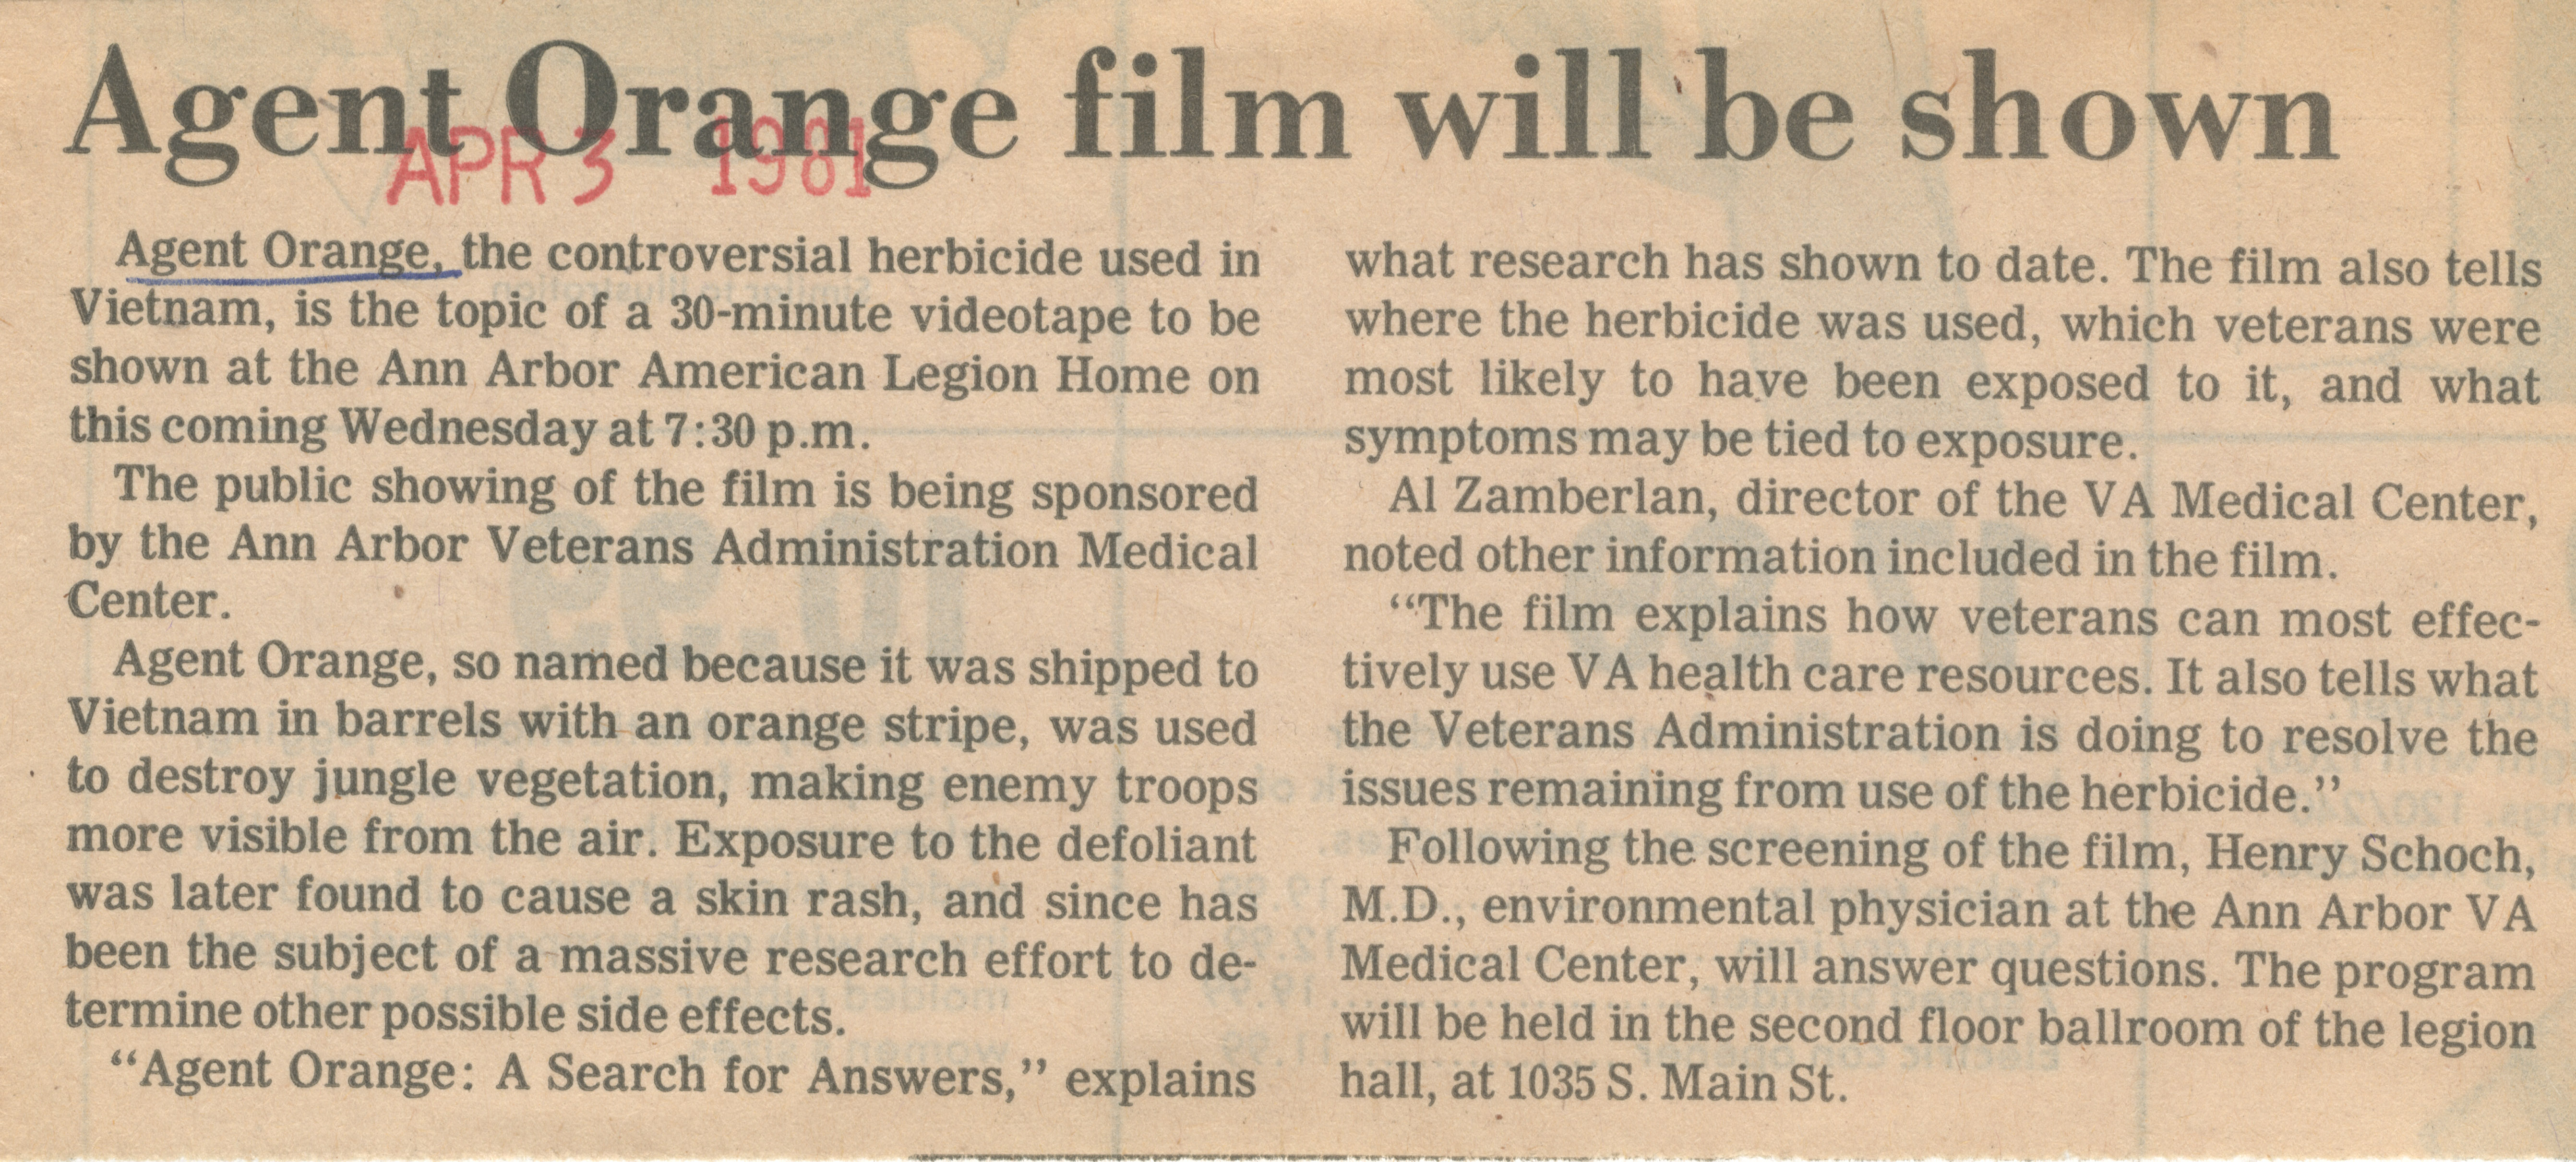 Agent Orange Films Will Be Shown image